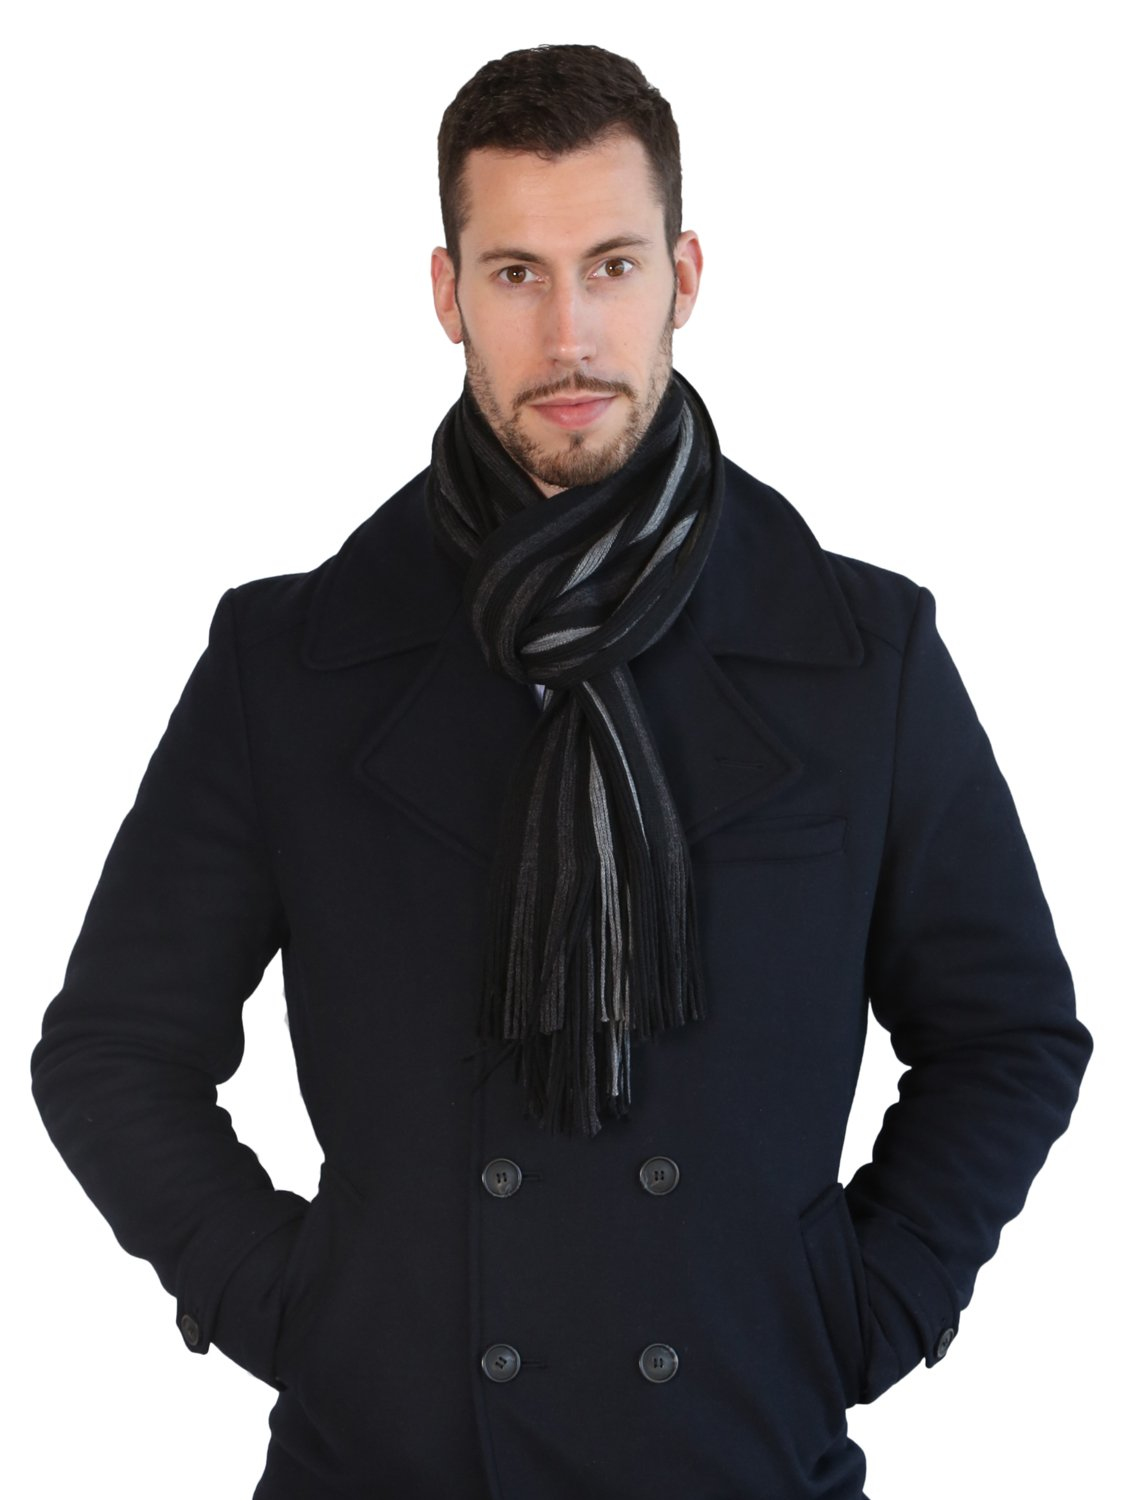 Rio Terra Men's Knitted Scarf, Designer Scarves for Winter Fall Fashion, Silver & Grey by Rio Terra (Image #2)